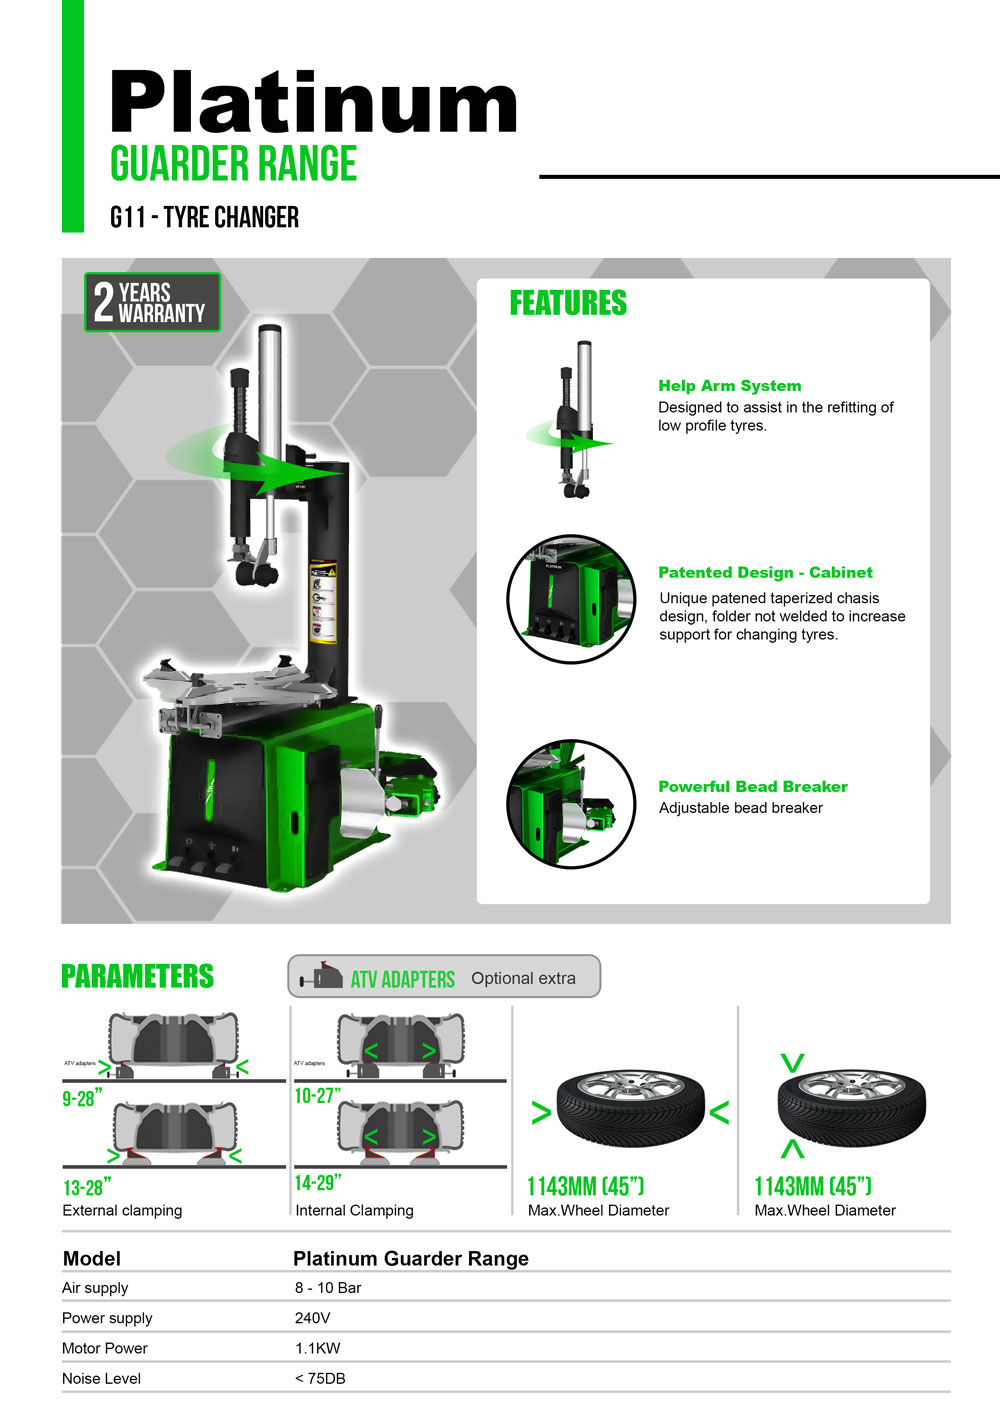 information flyer for g11 semi-automatic guarder tyre changer